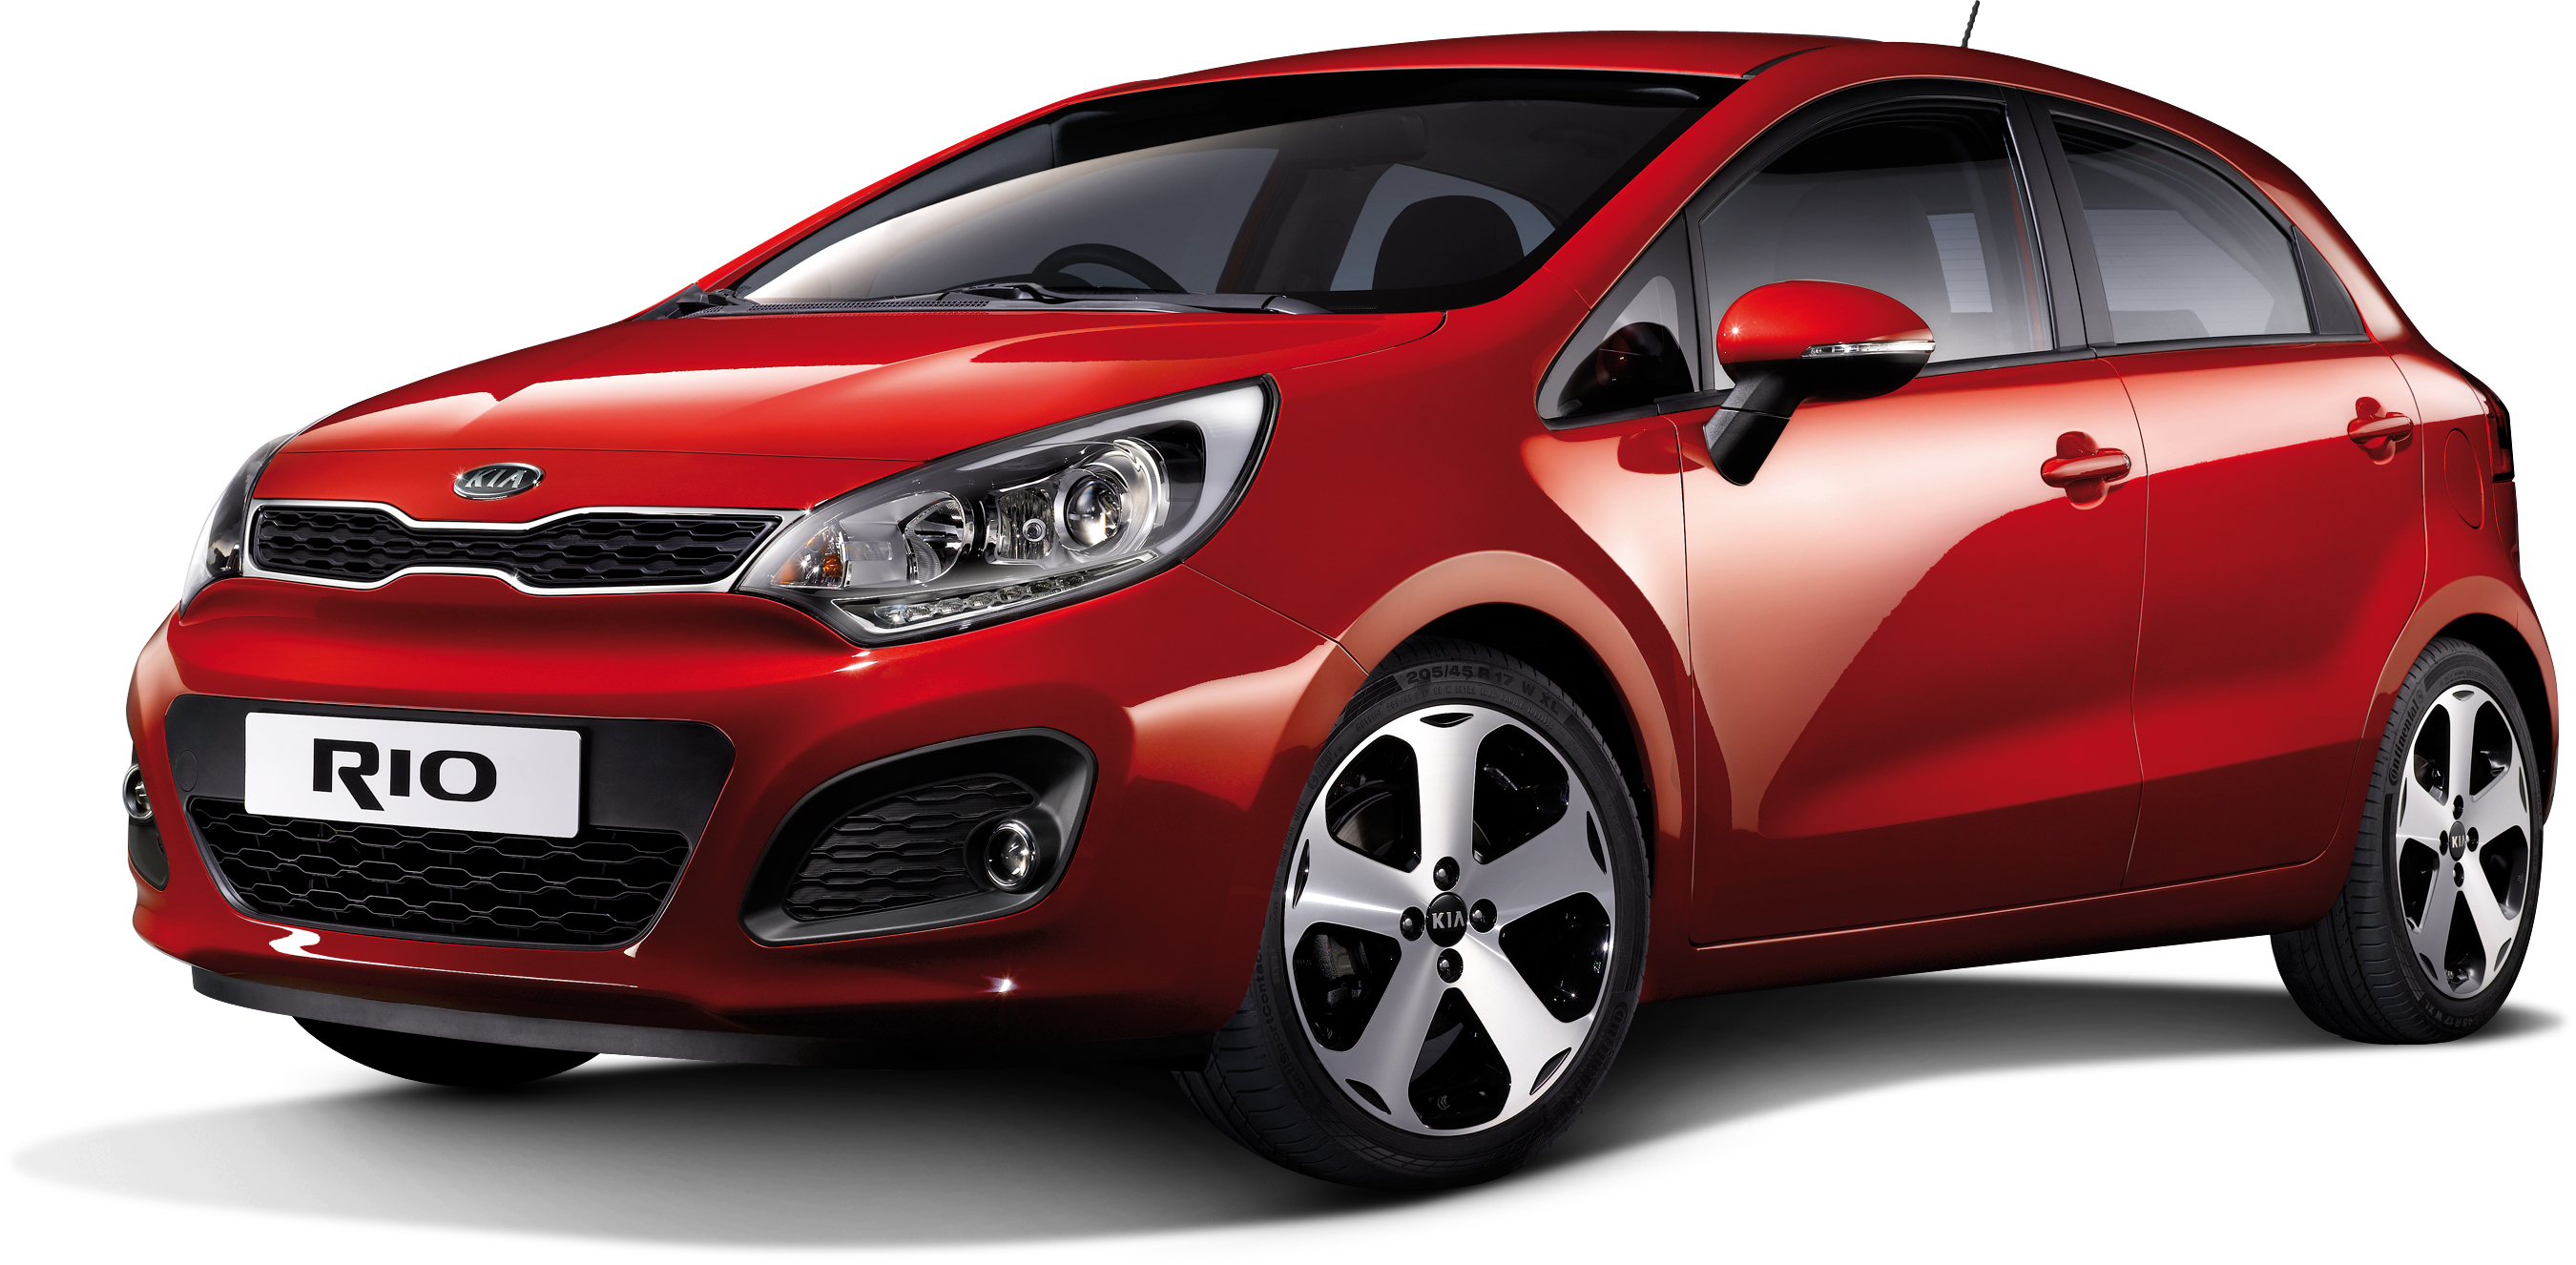 Kia Rio   pictures, information and specs - Auto-Database.com